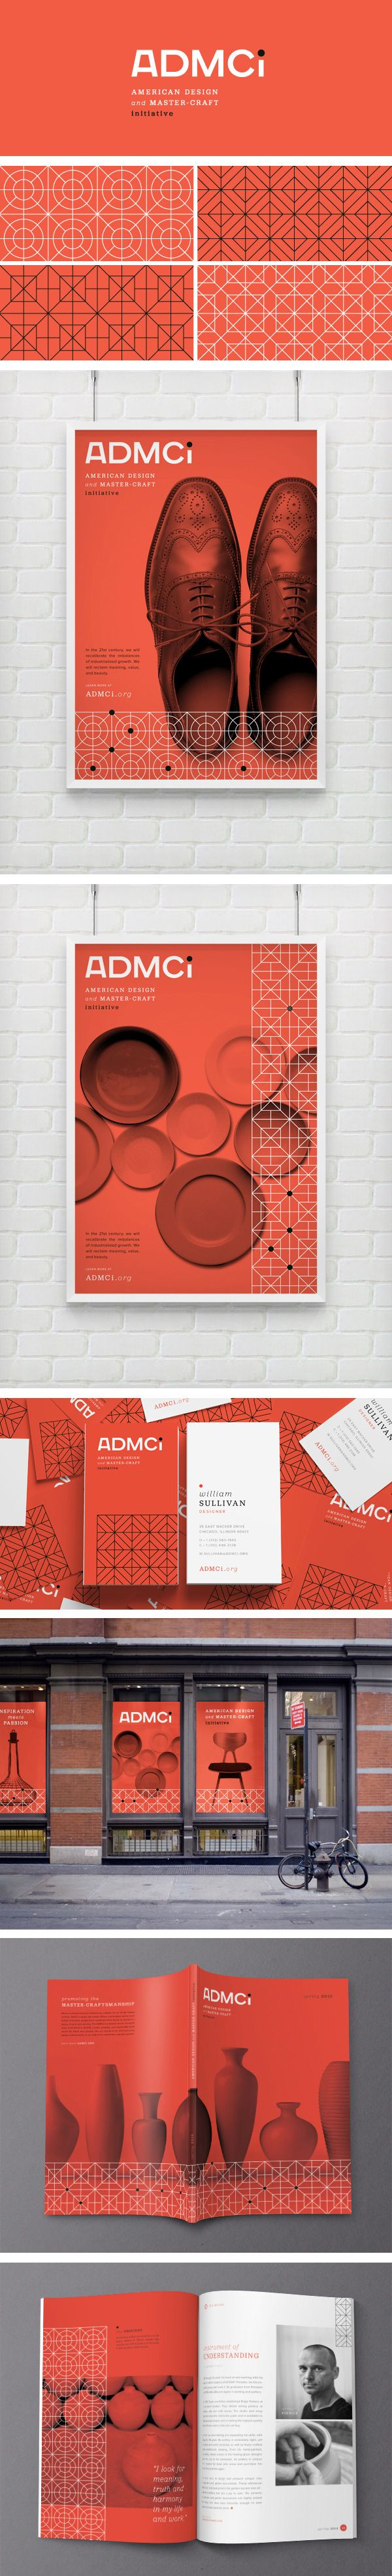 ADMCi Identity | Designer: Eight Hour Day  #stationary #corporate #design…